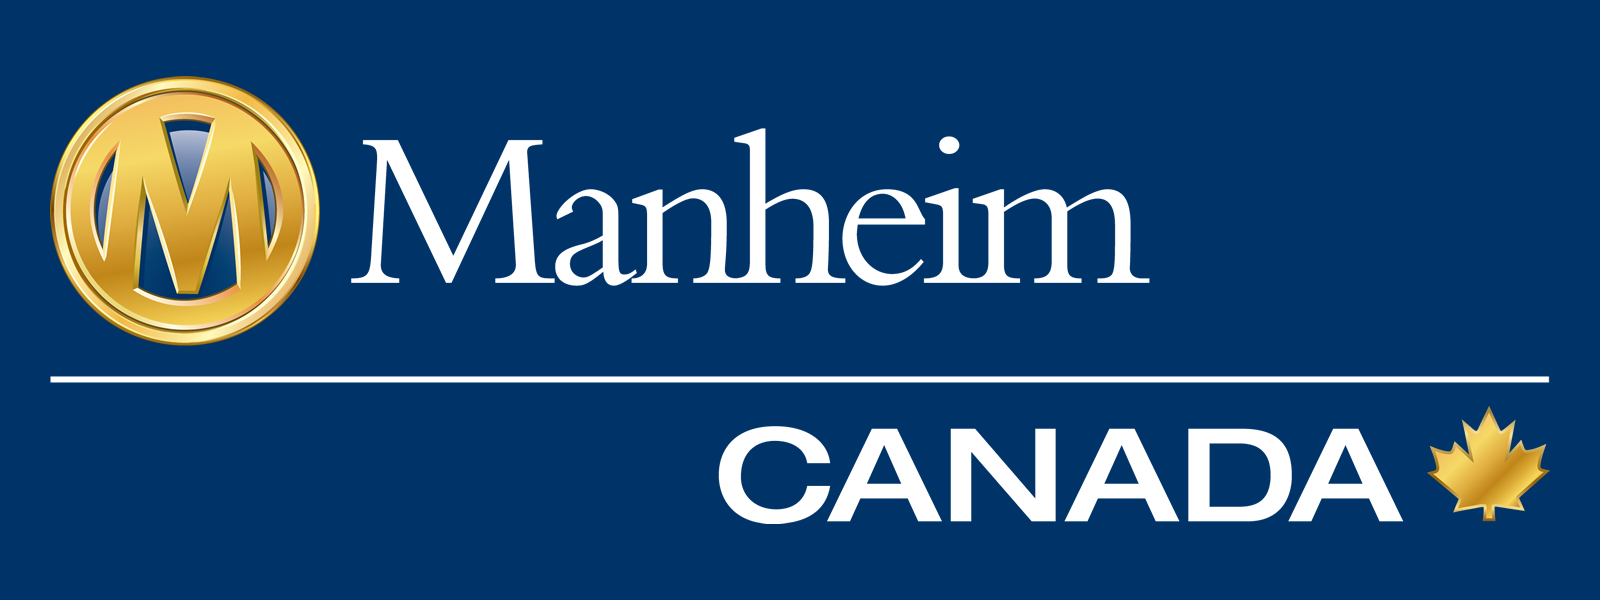 Manheim Canada's Investment in Website to Equal Better, Smarter, Faster Service